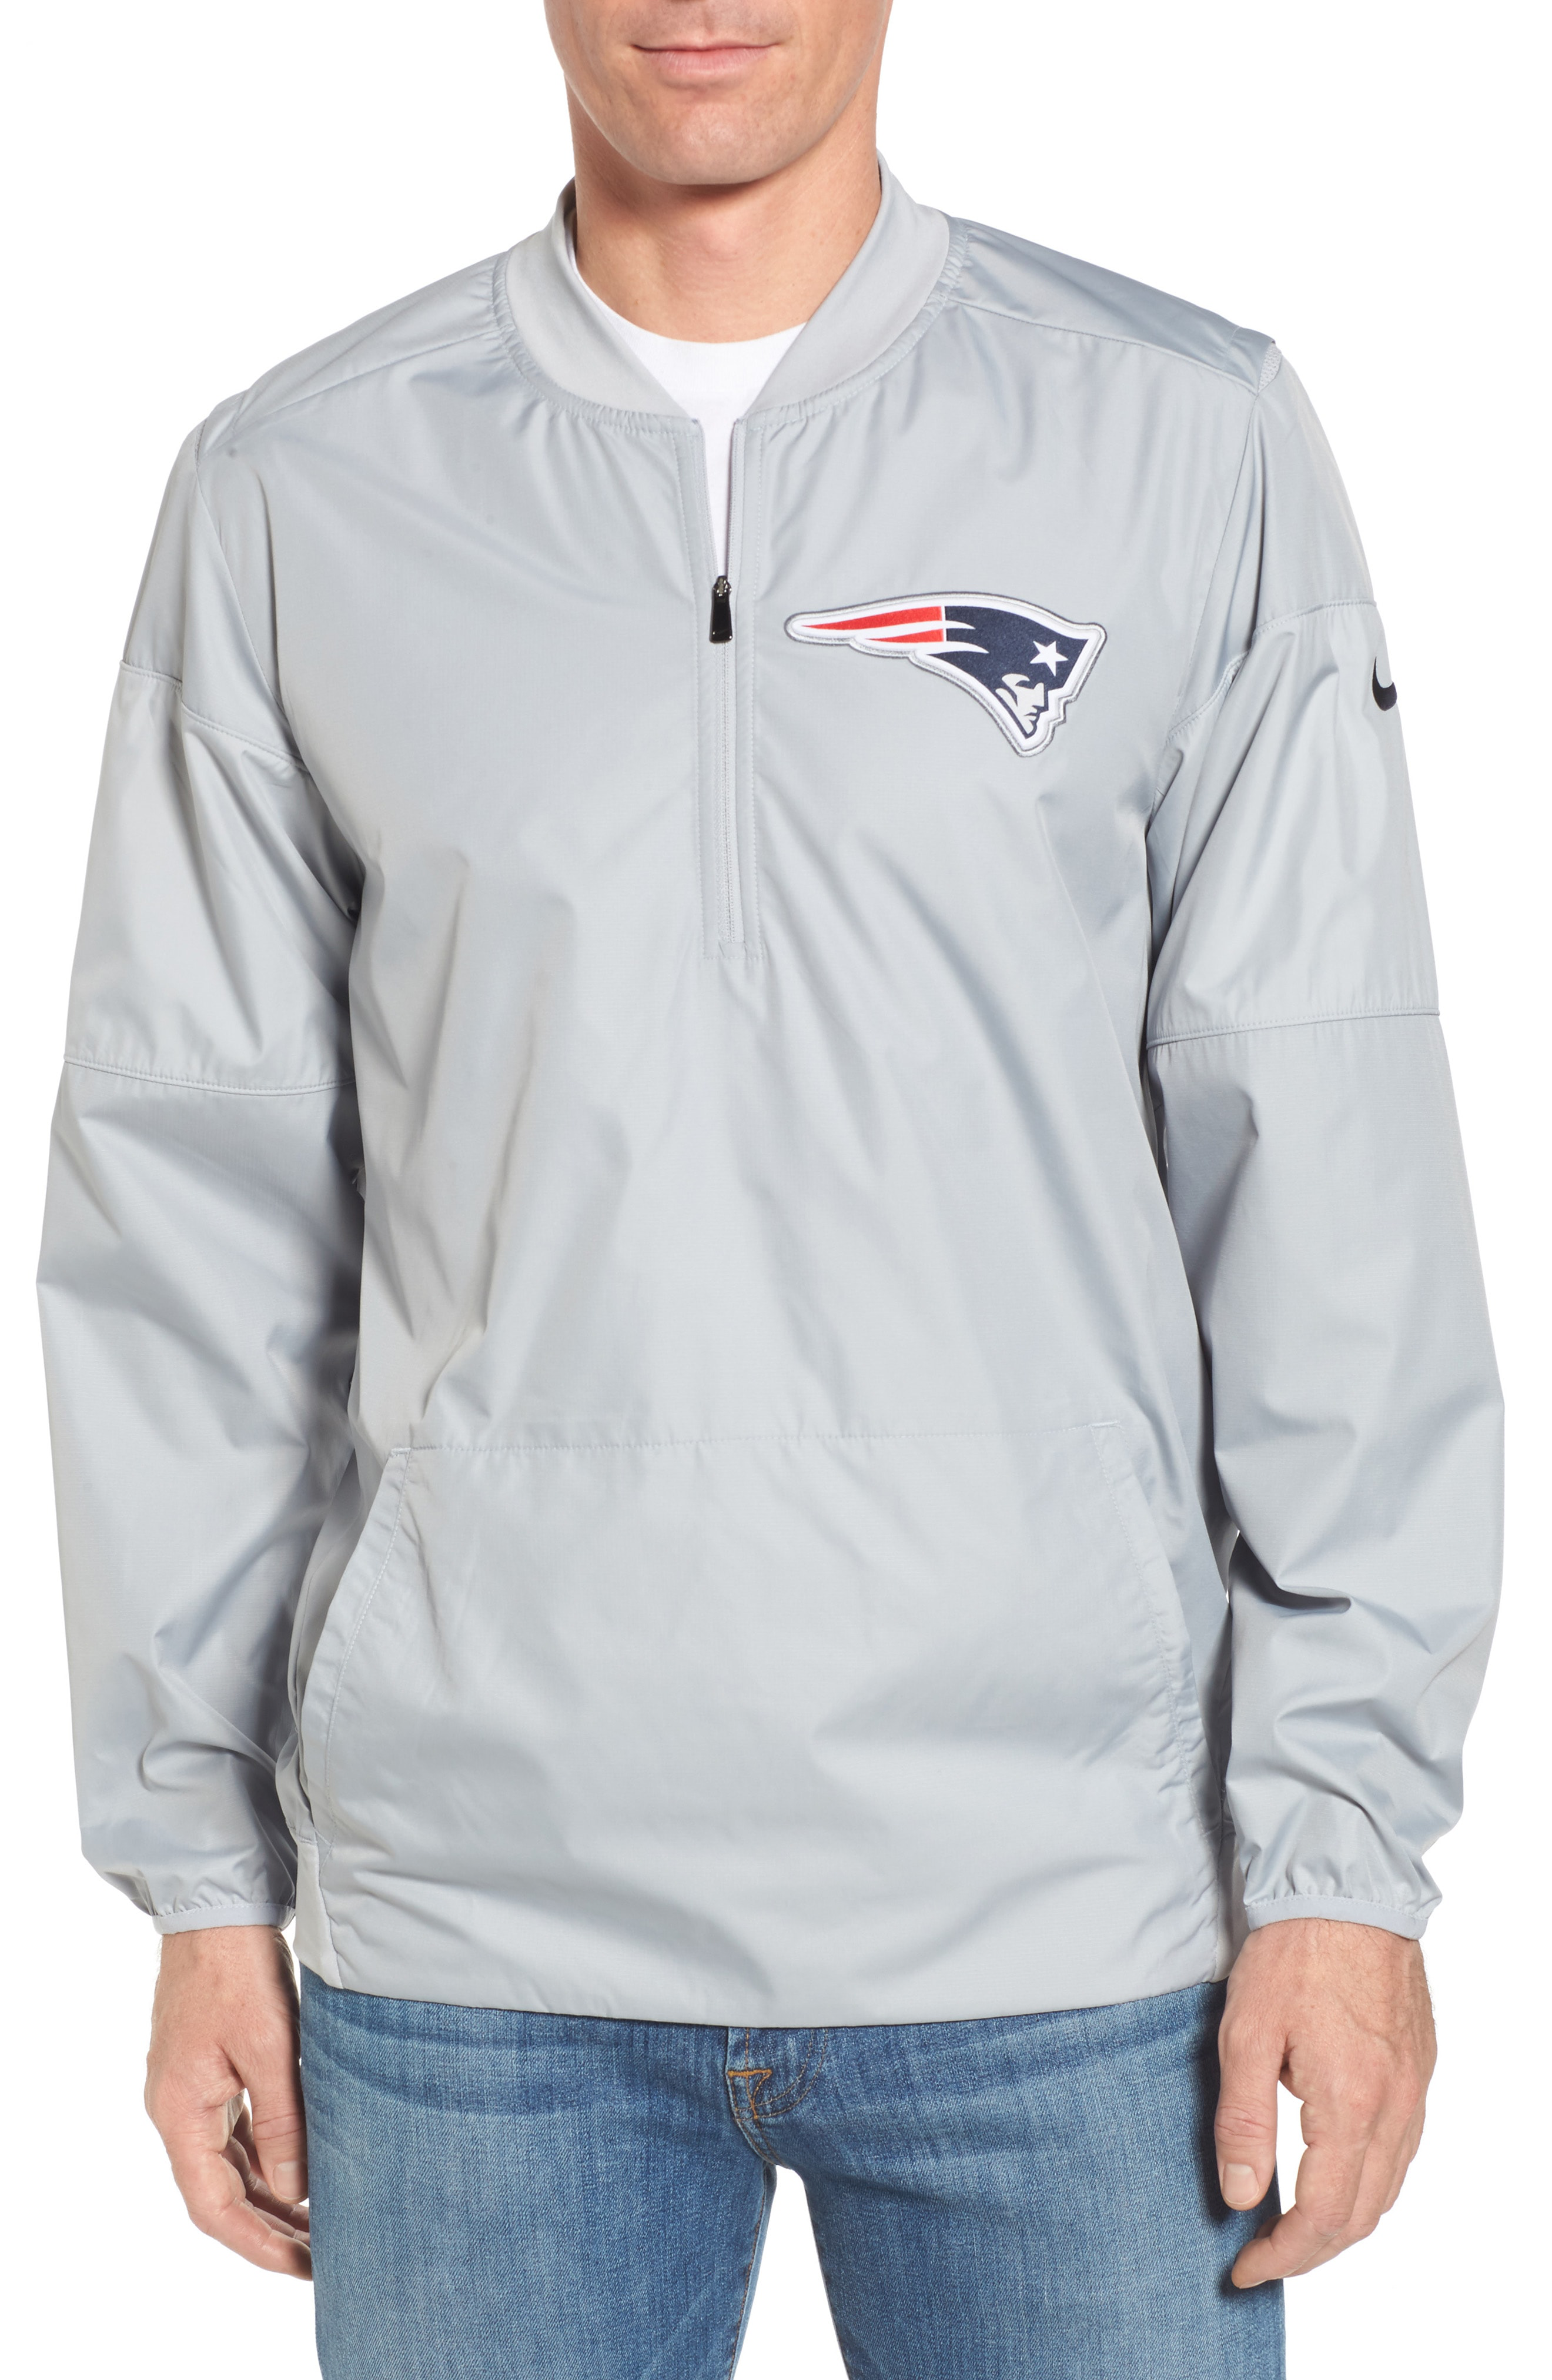 competitive price e4a50 7e9c1 Lockdown New England Patriots Pullover Jacket in Patriots Grey